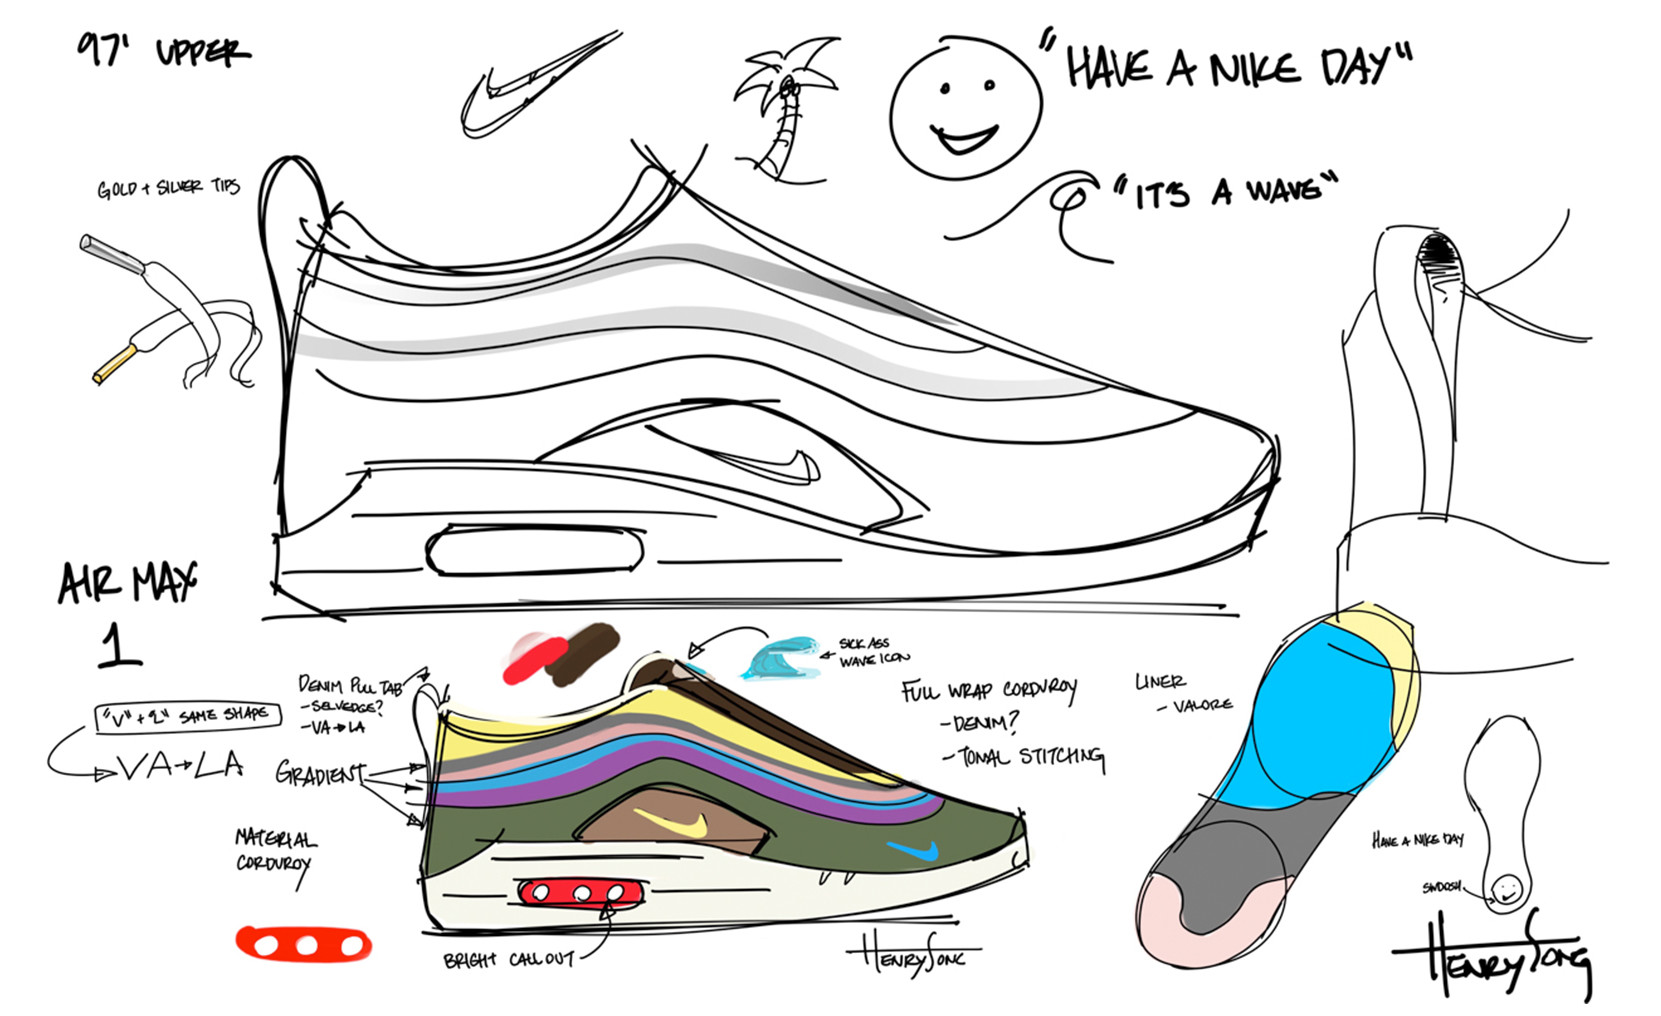 e937ccbb3d Sean Wotherspoon x Nike Air Max 1/97 VF Design Process | Sole Collector